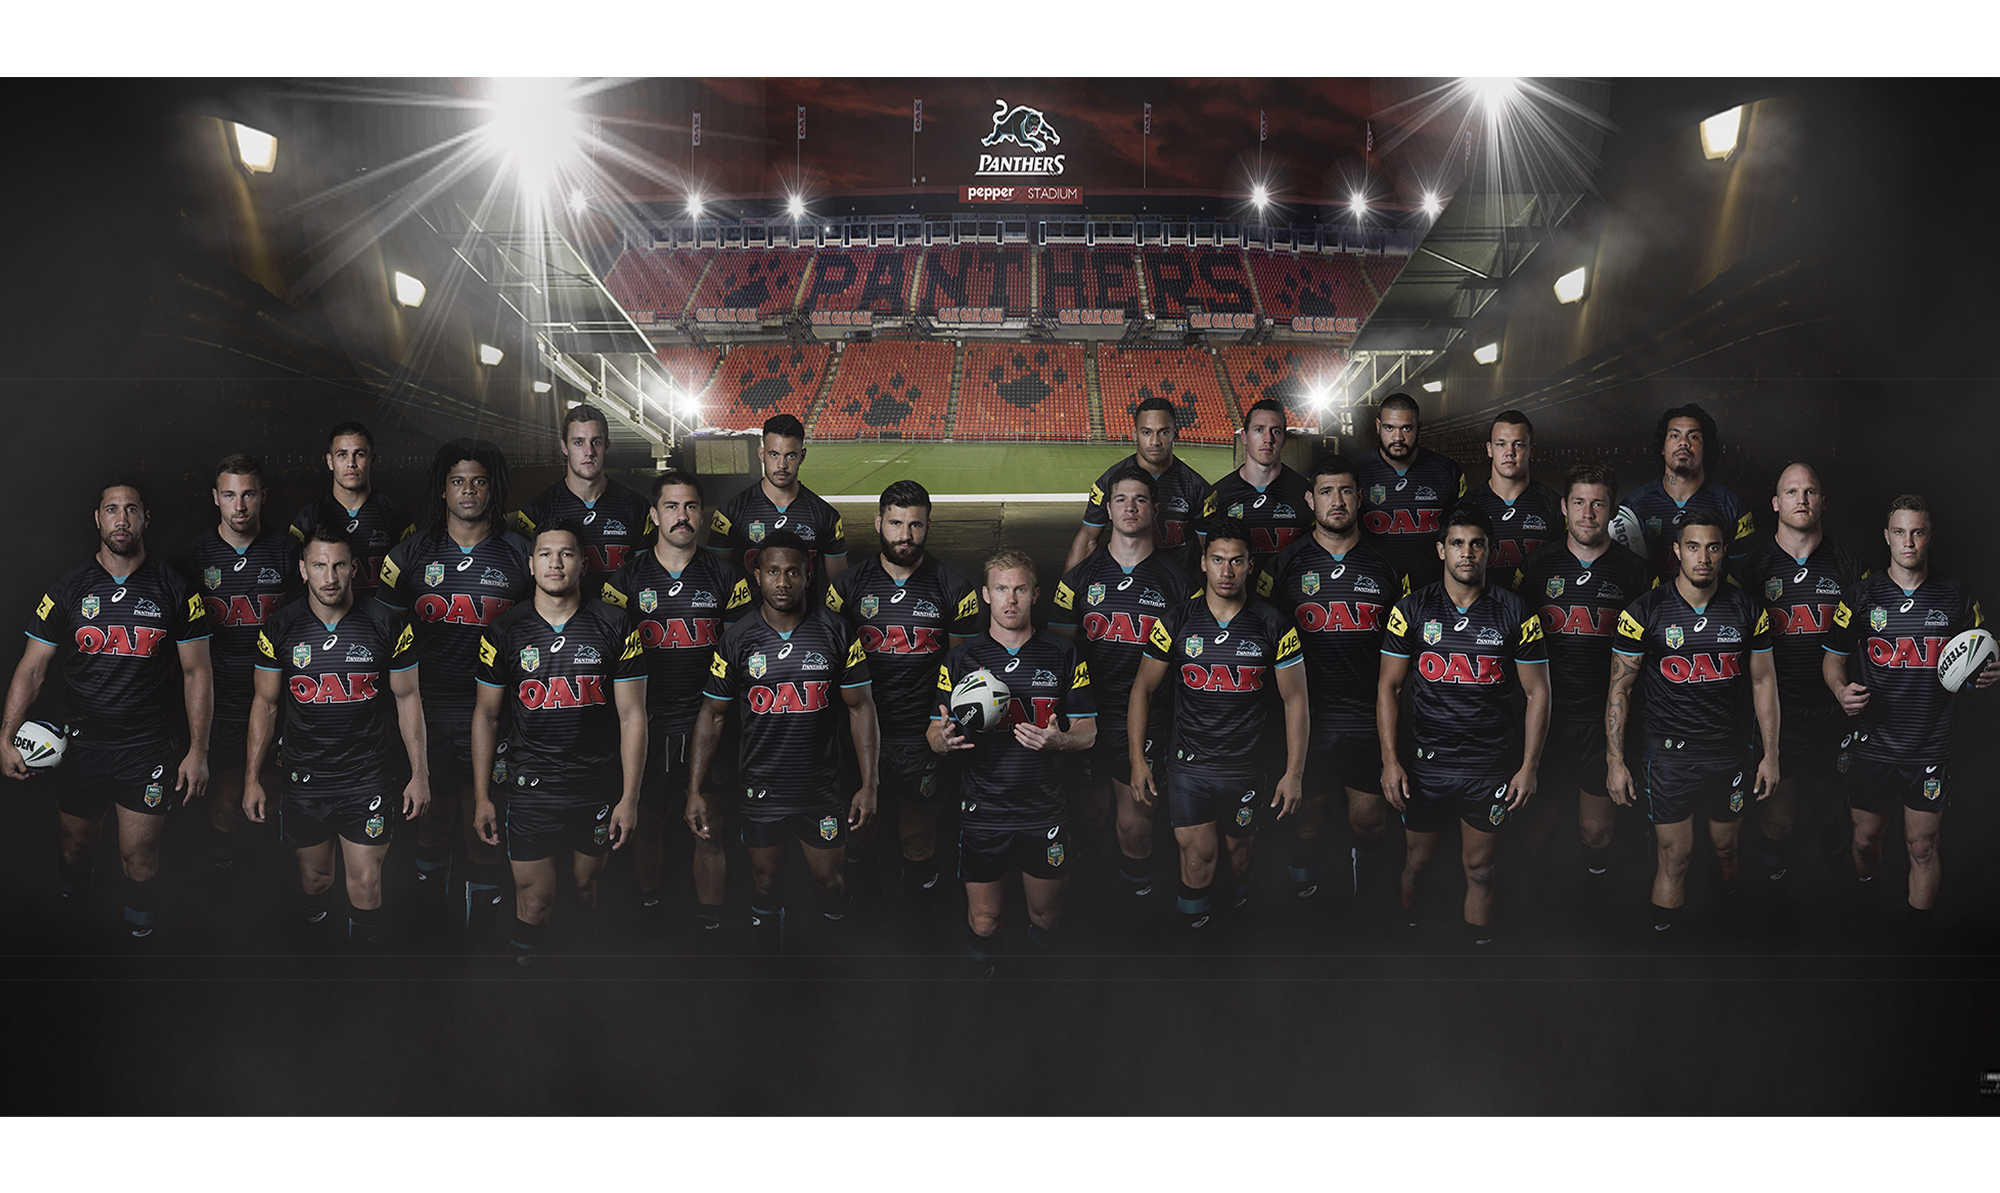 PANTHERS TEAM